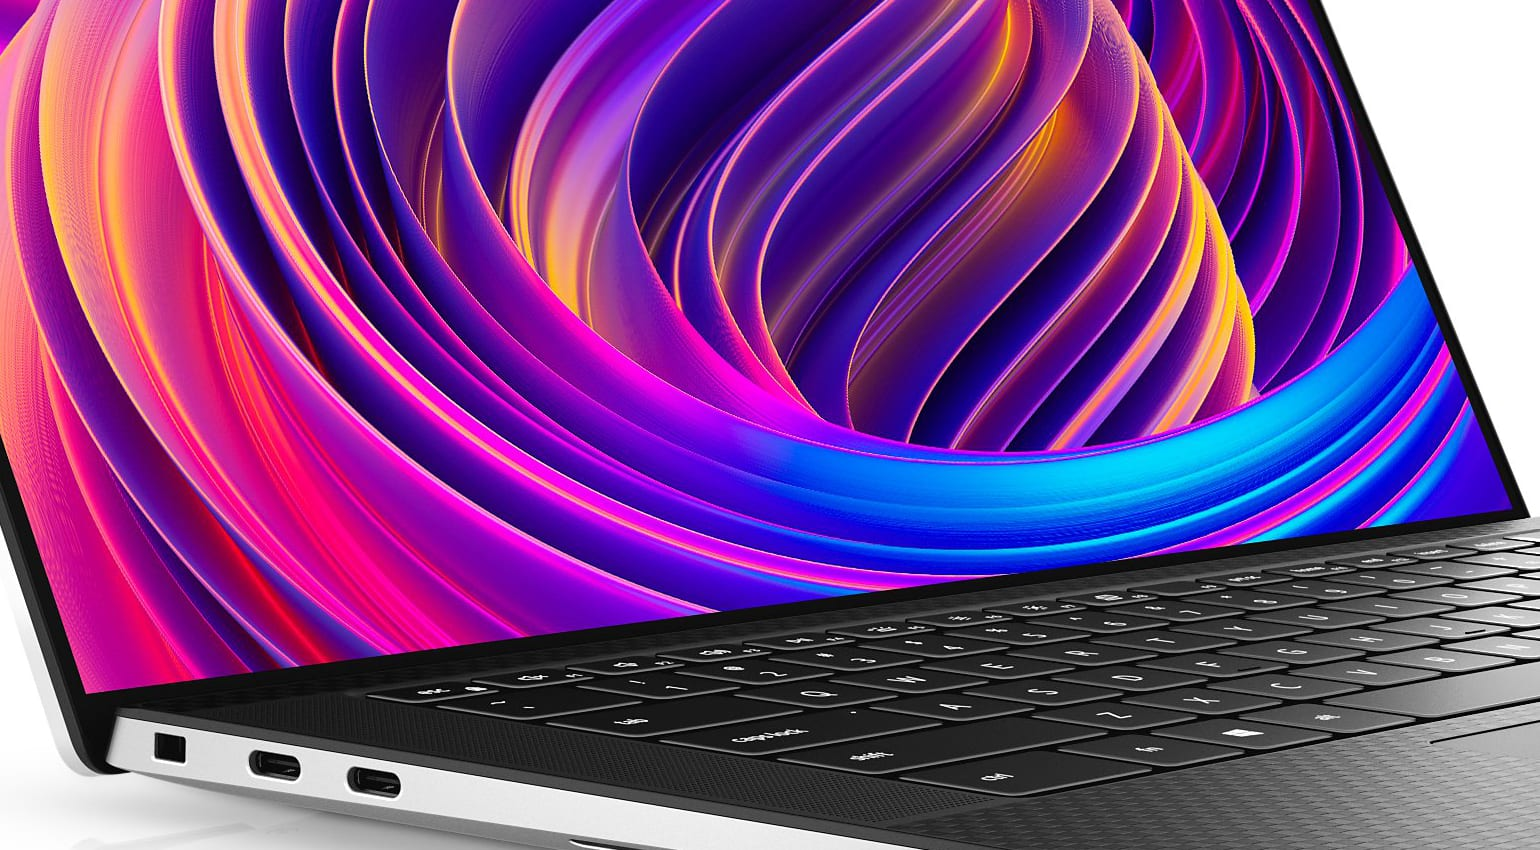 Dell's XPS 15 range is an impressive Windows laptop for music production